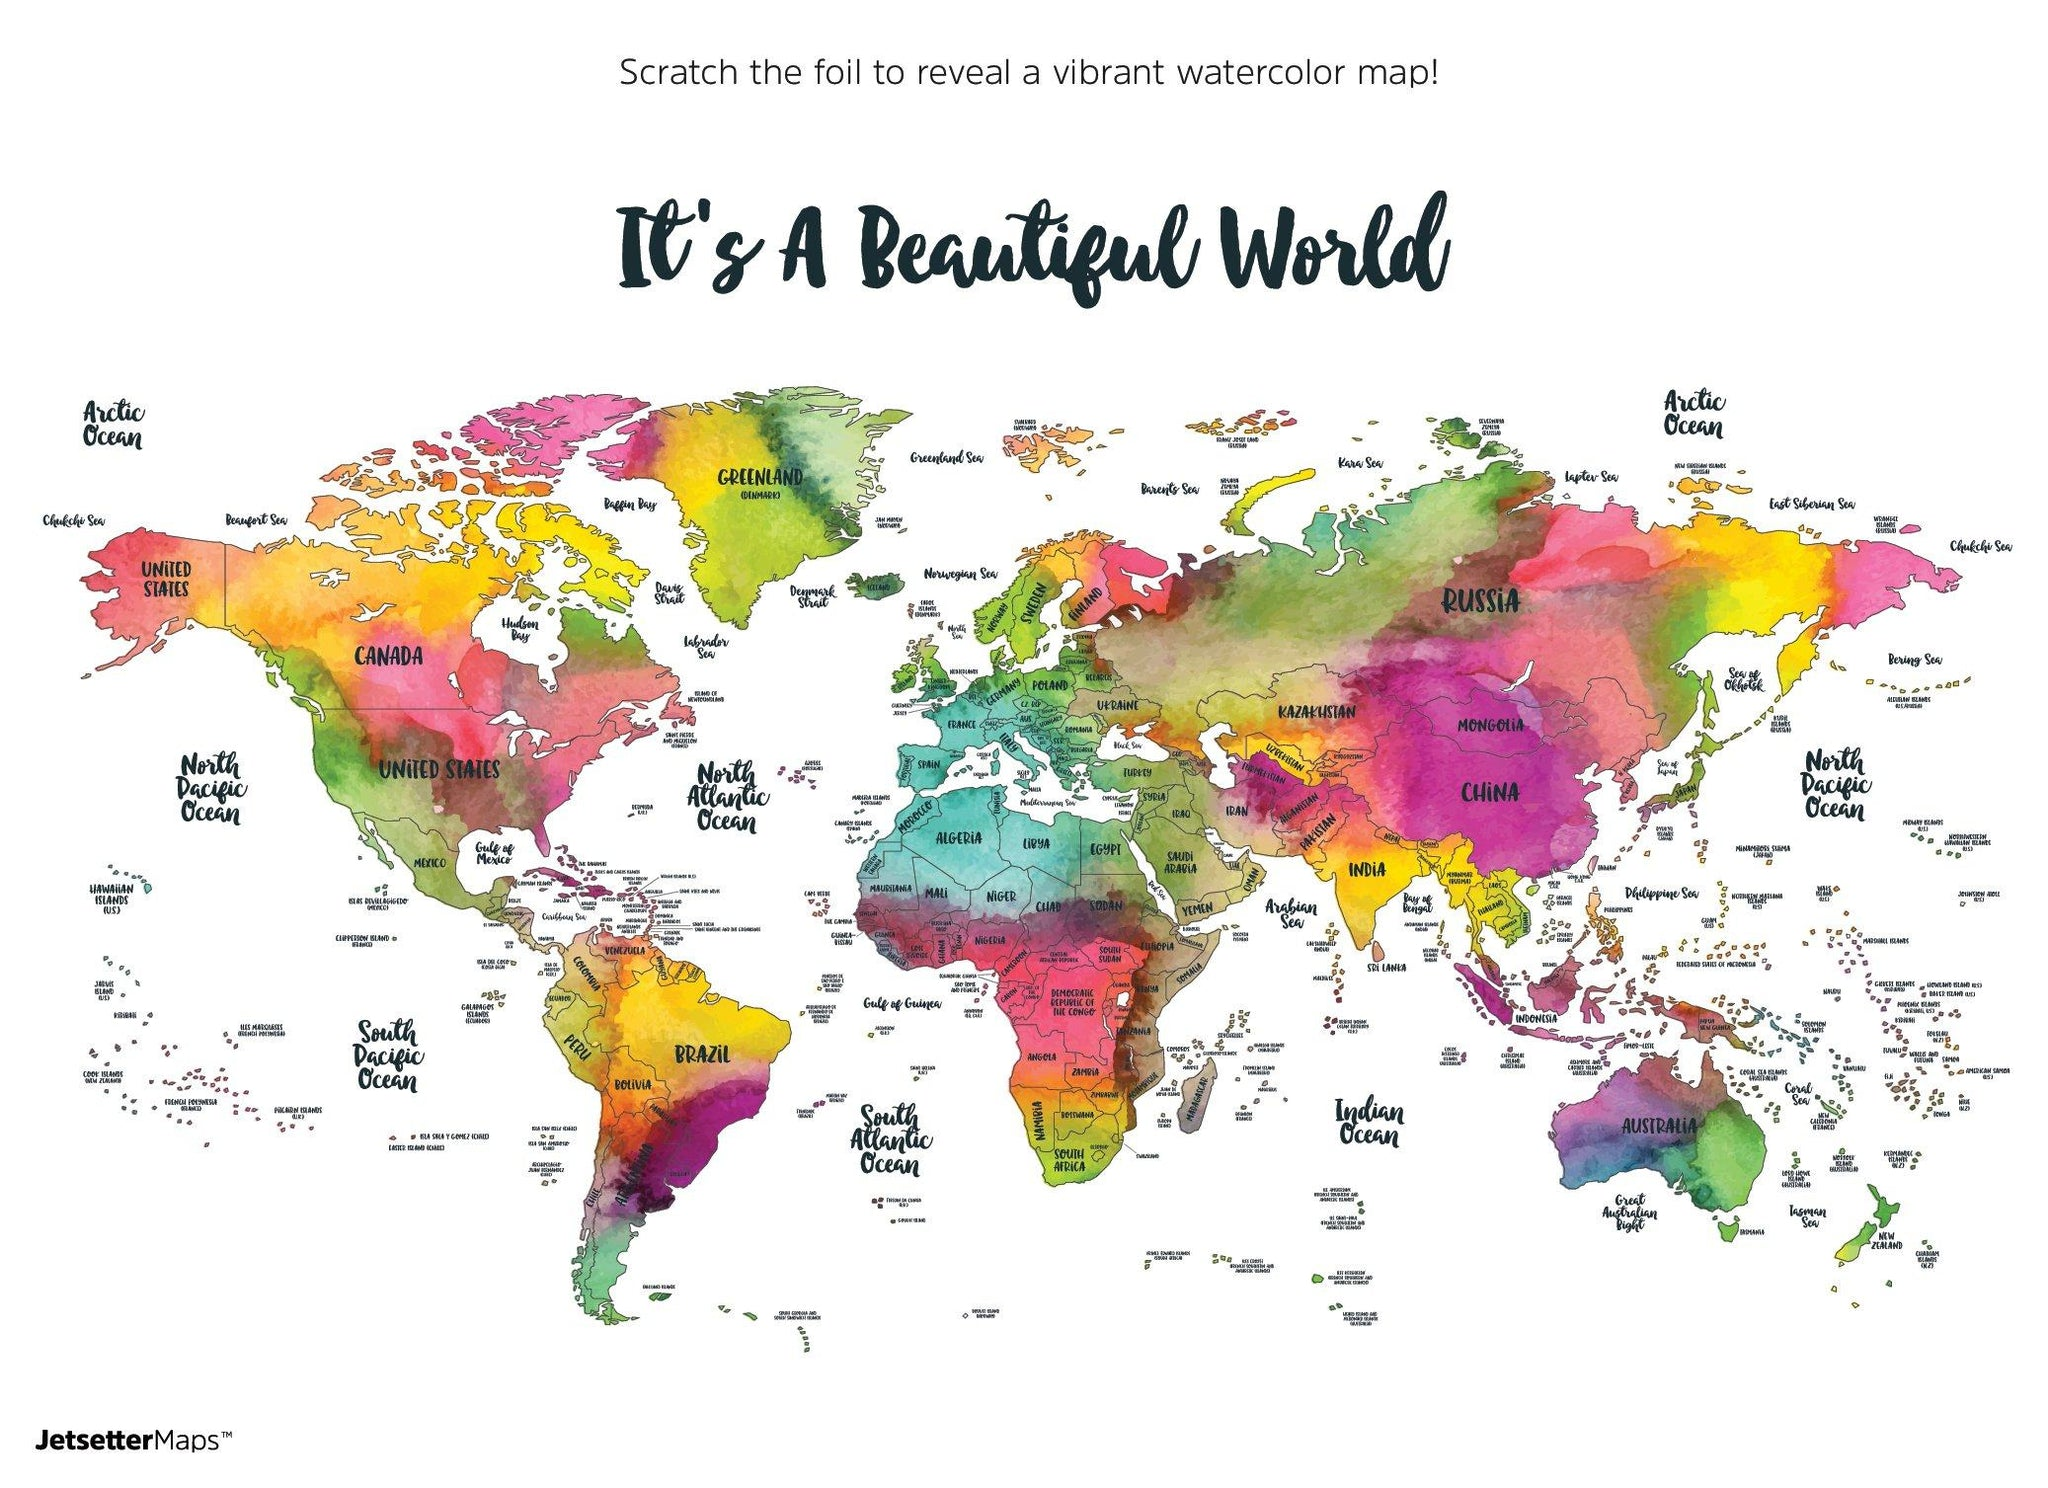 Frameable World Map.Wanderlust Scratch Your Travels Watercolor World Map 30x20in